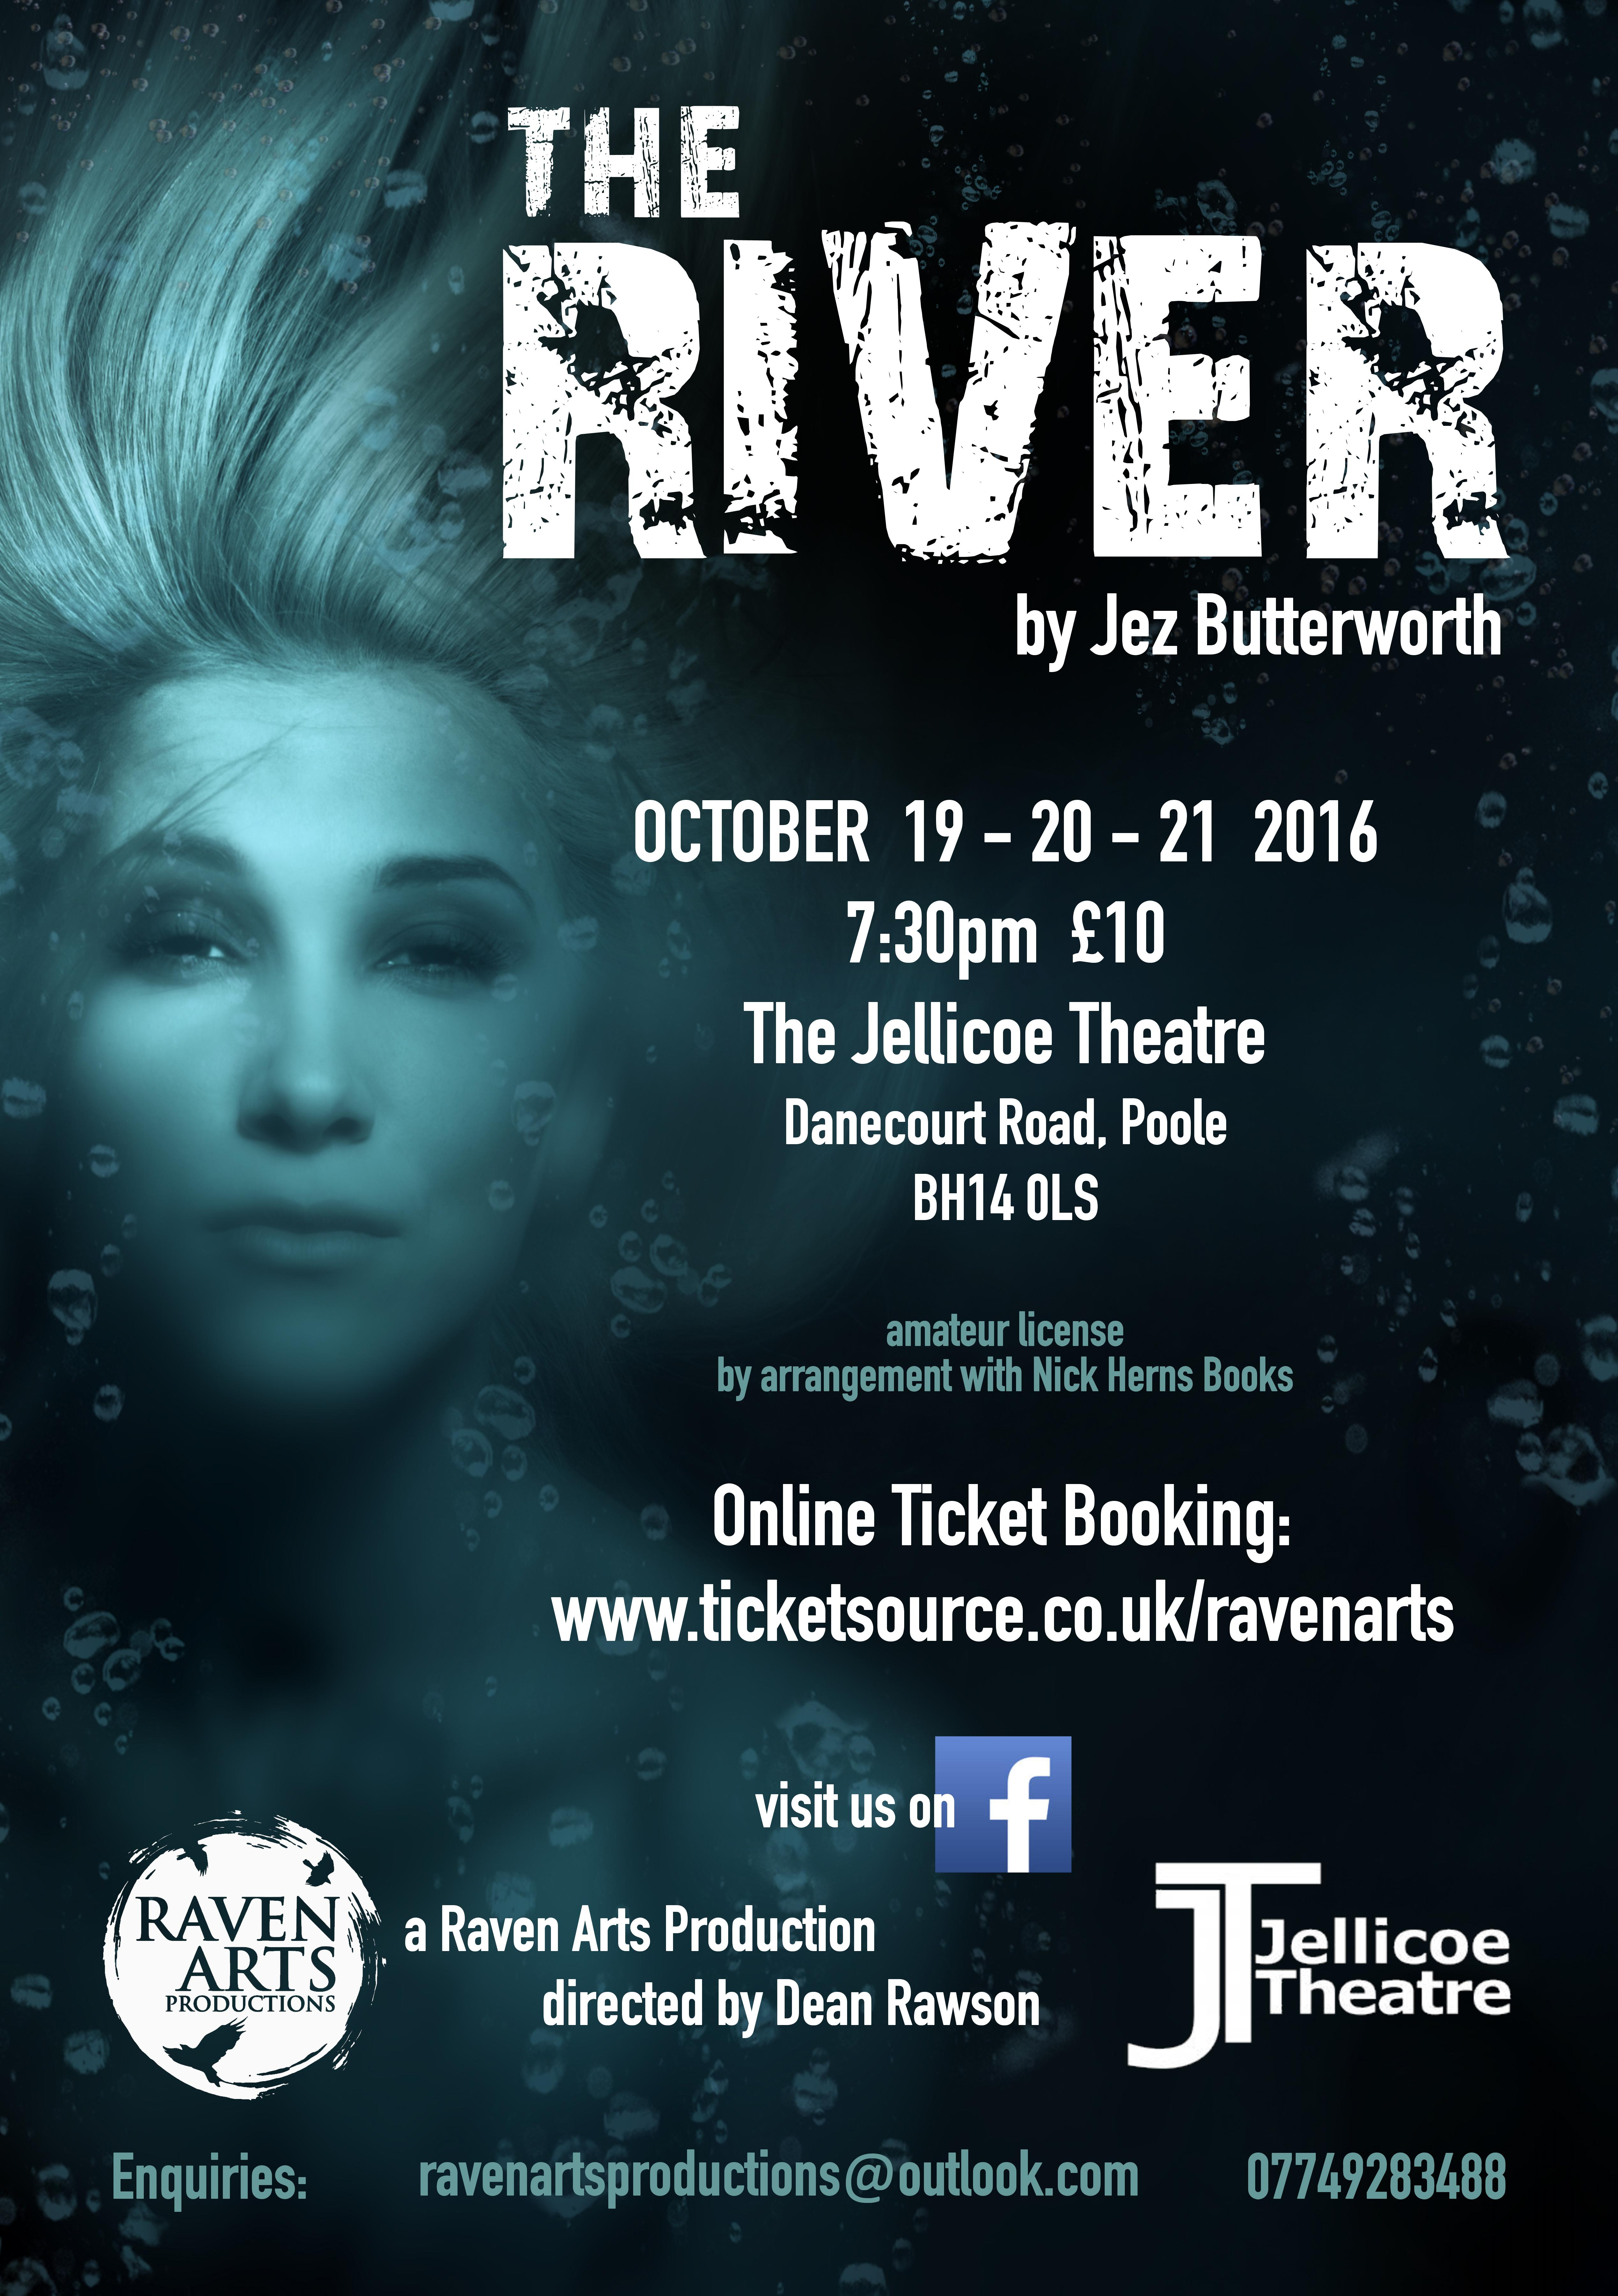 Nick Hern Books - Plays to Perform - Advertise Your Show images - The River Raven Arts